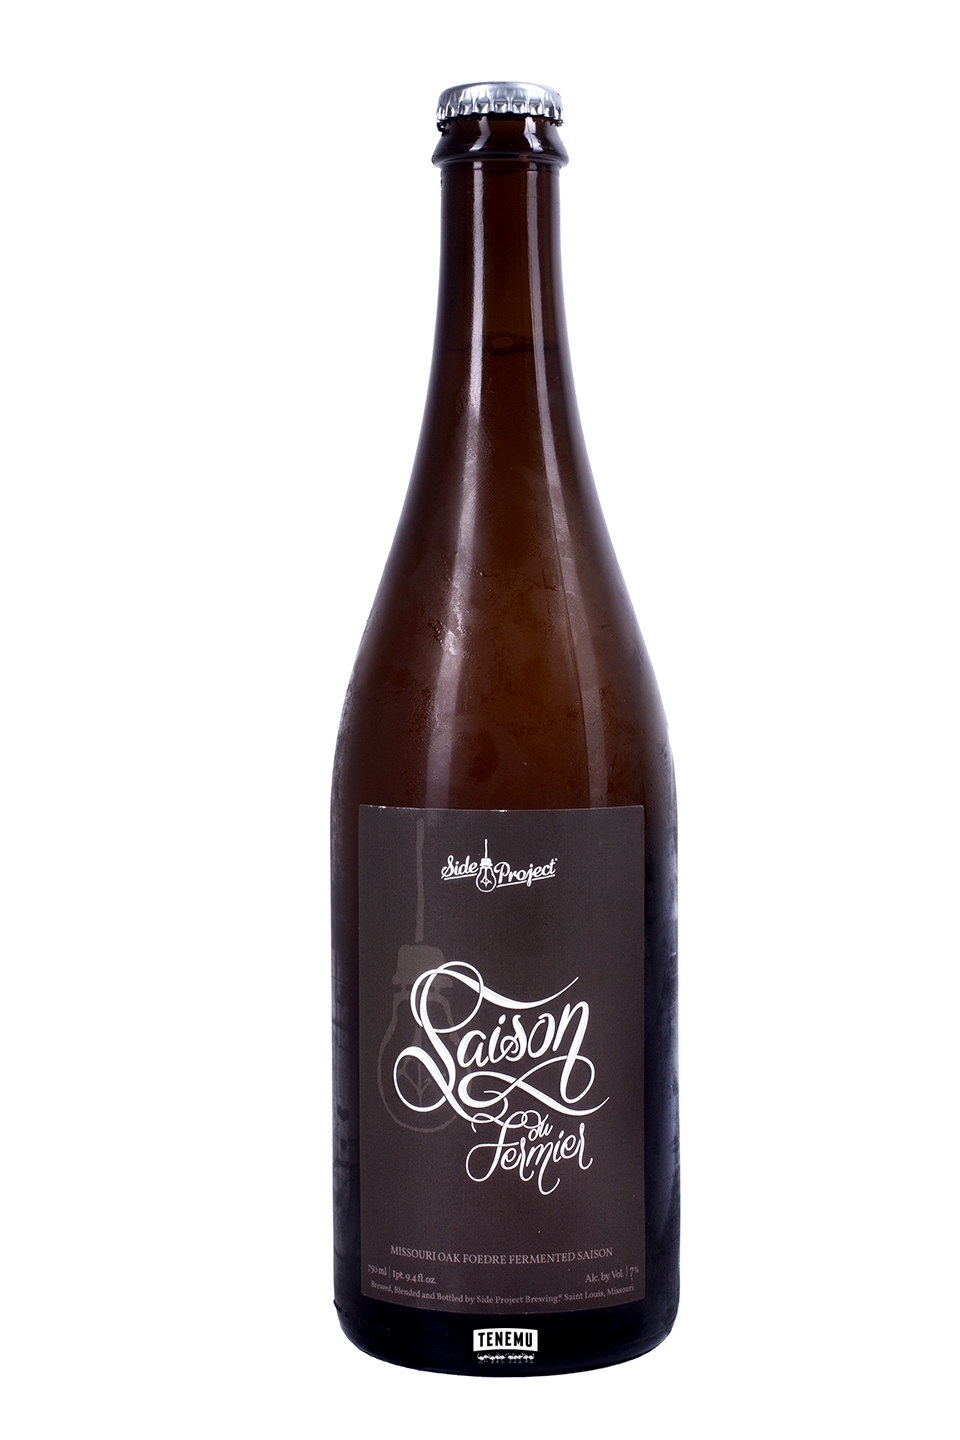 Side Project Saison Du Fermier Batch #3 bottle